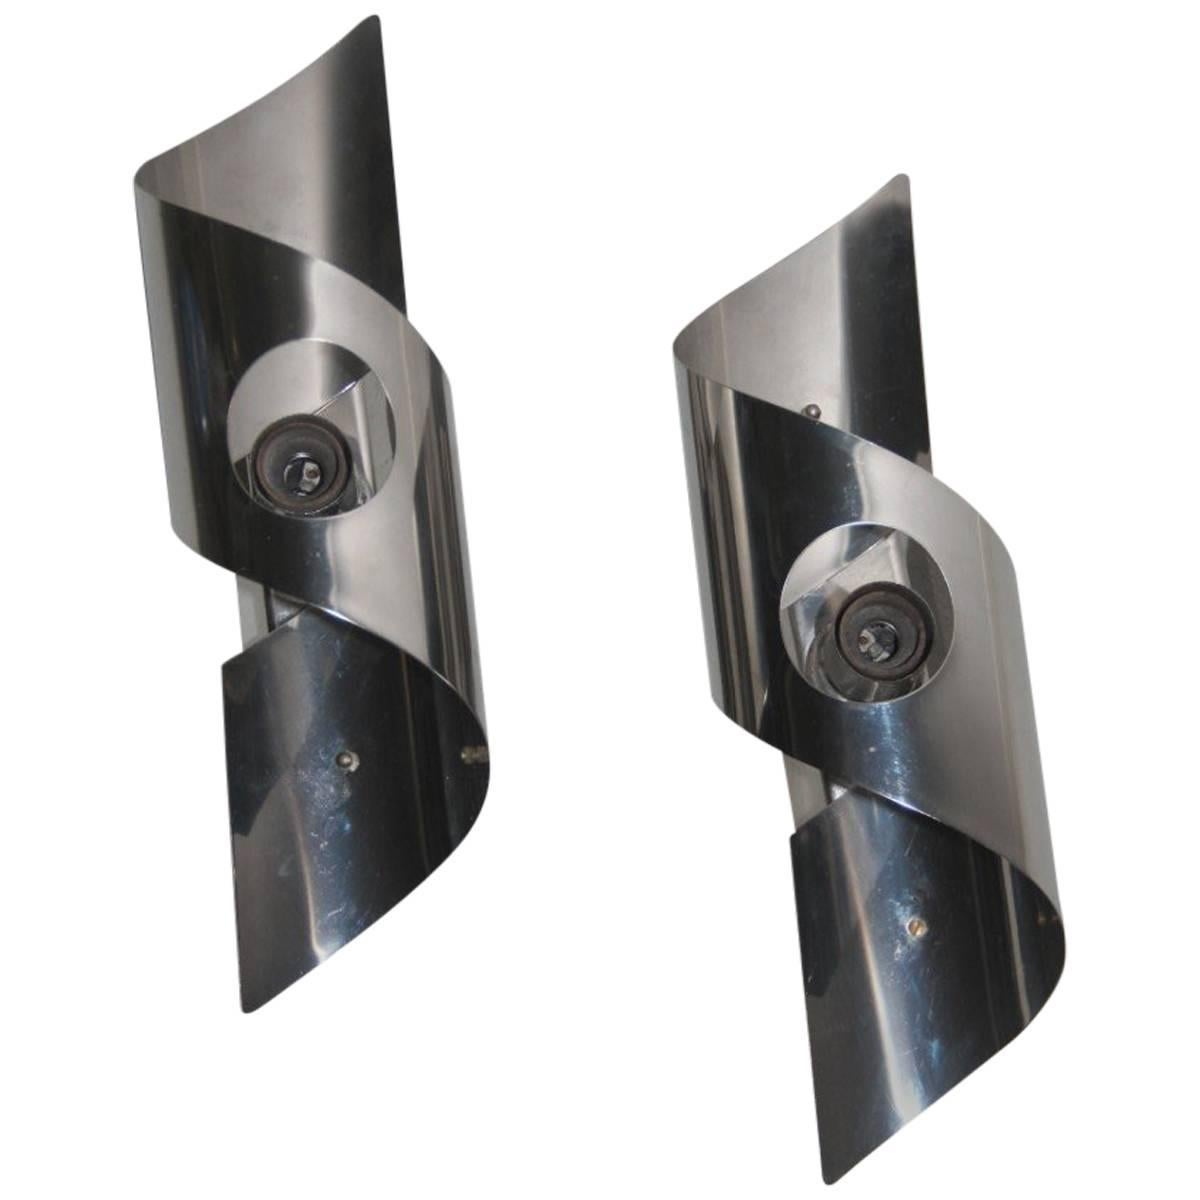 Pop Art Curved Steel Wall Sconces, 1970s